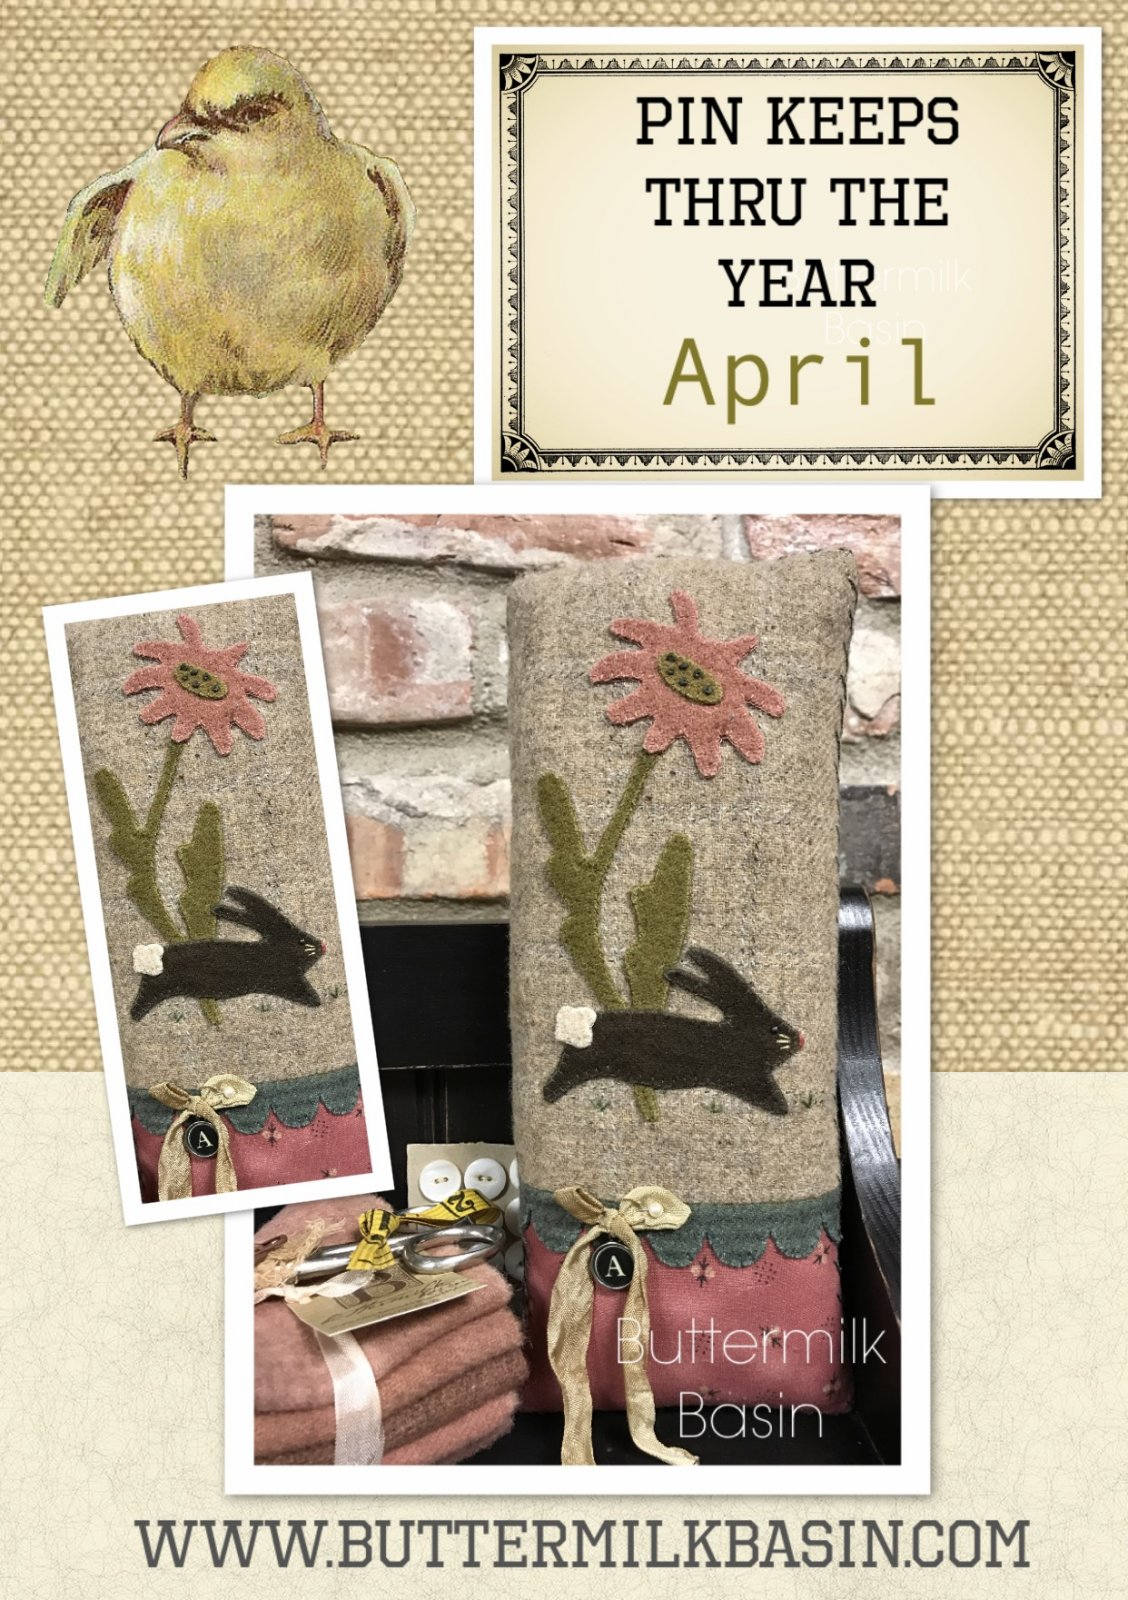 Year of the Pinkeeps: April (Kit with Wool)